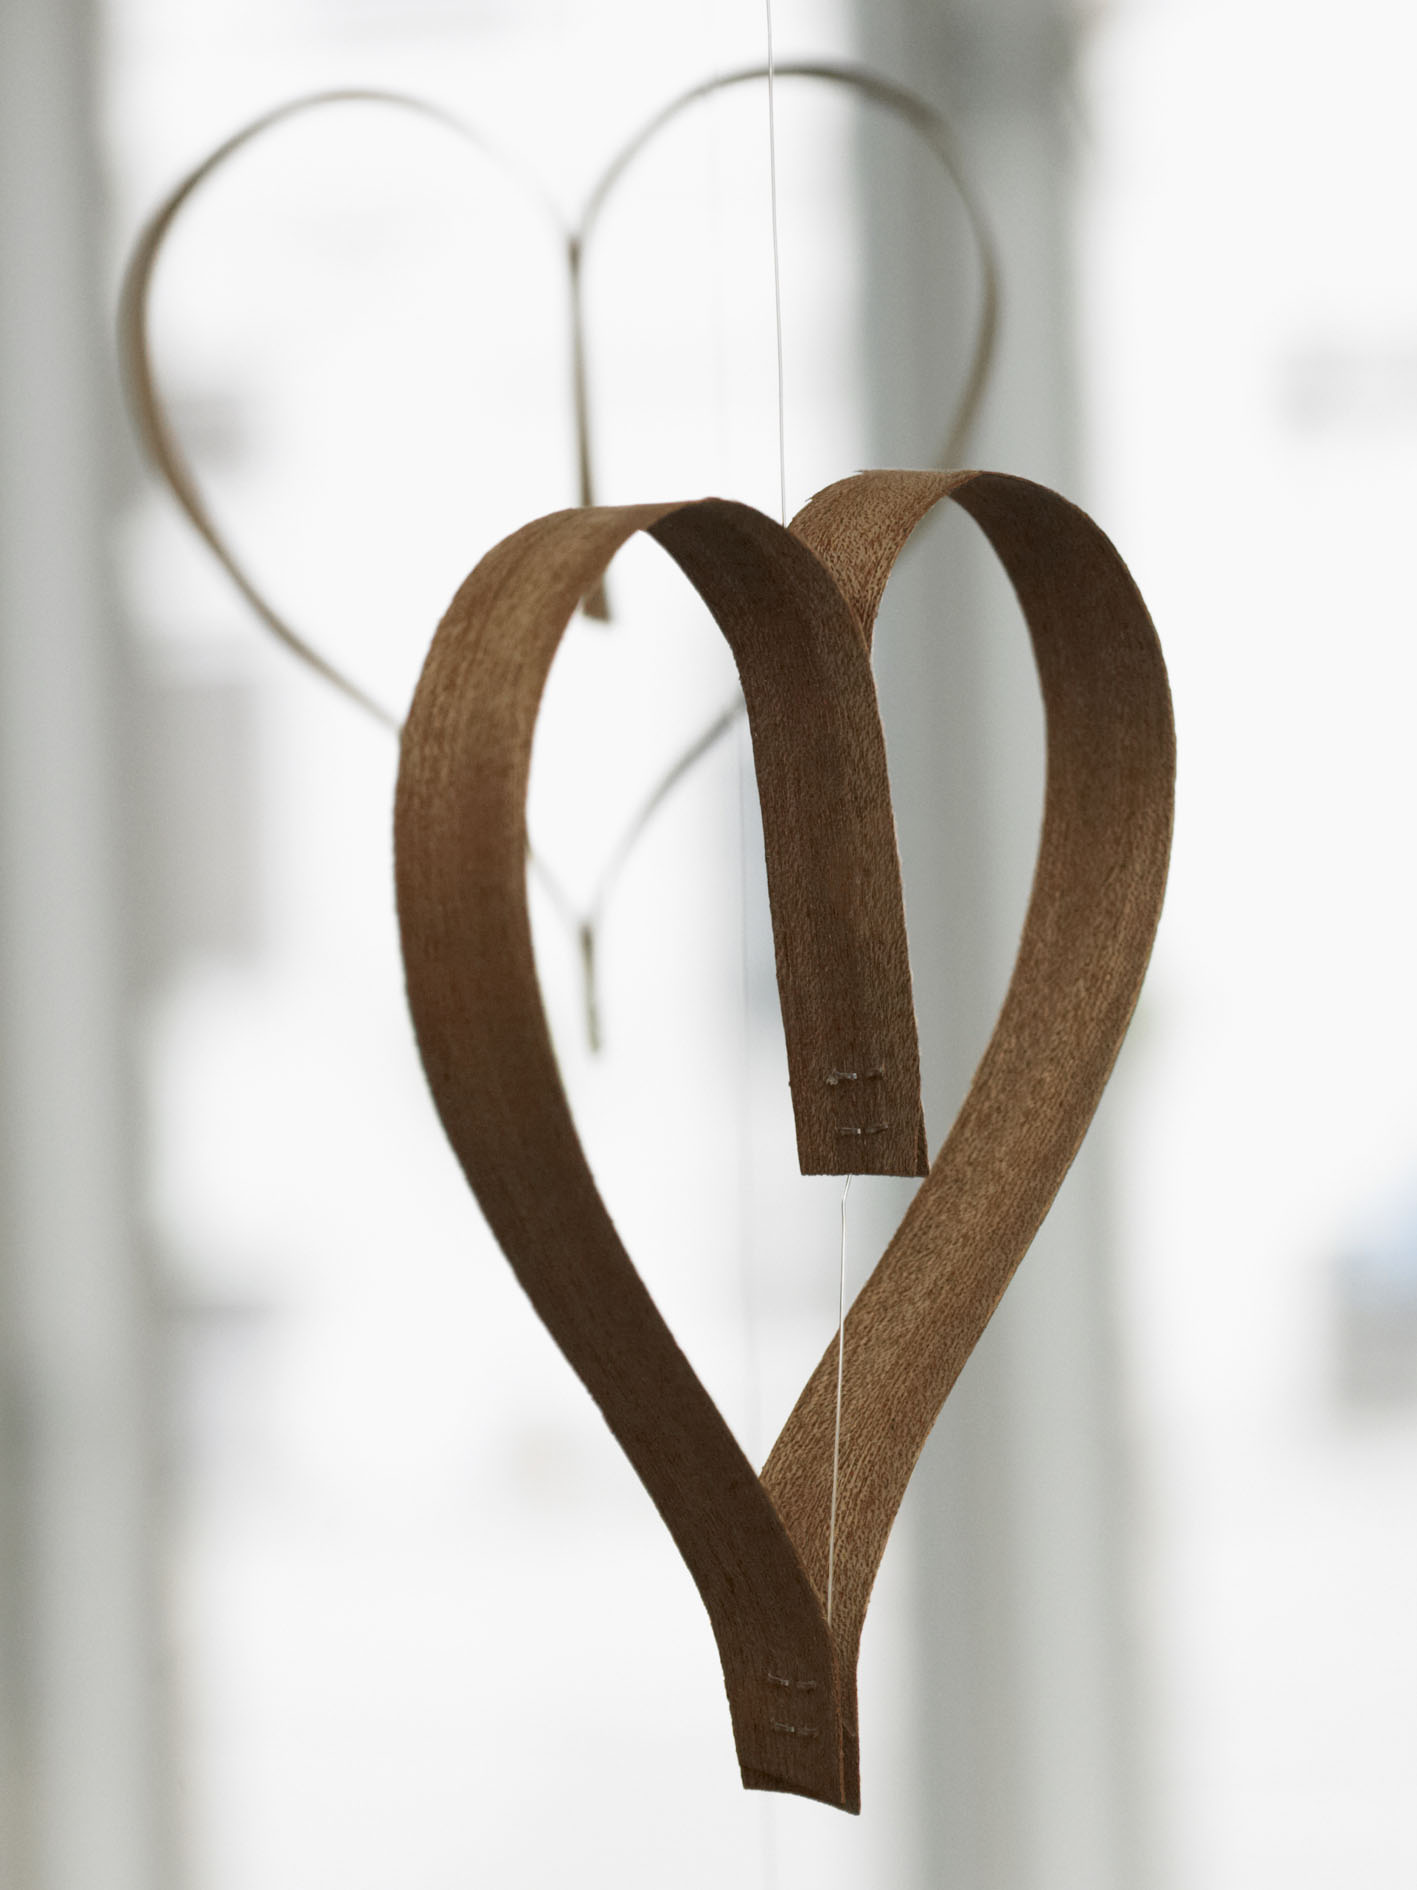 Heart made of wooden veneer.